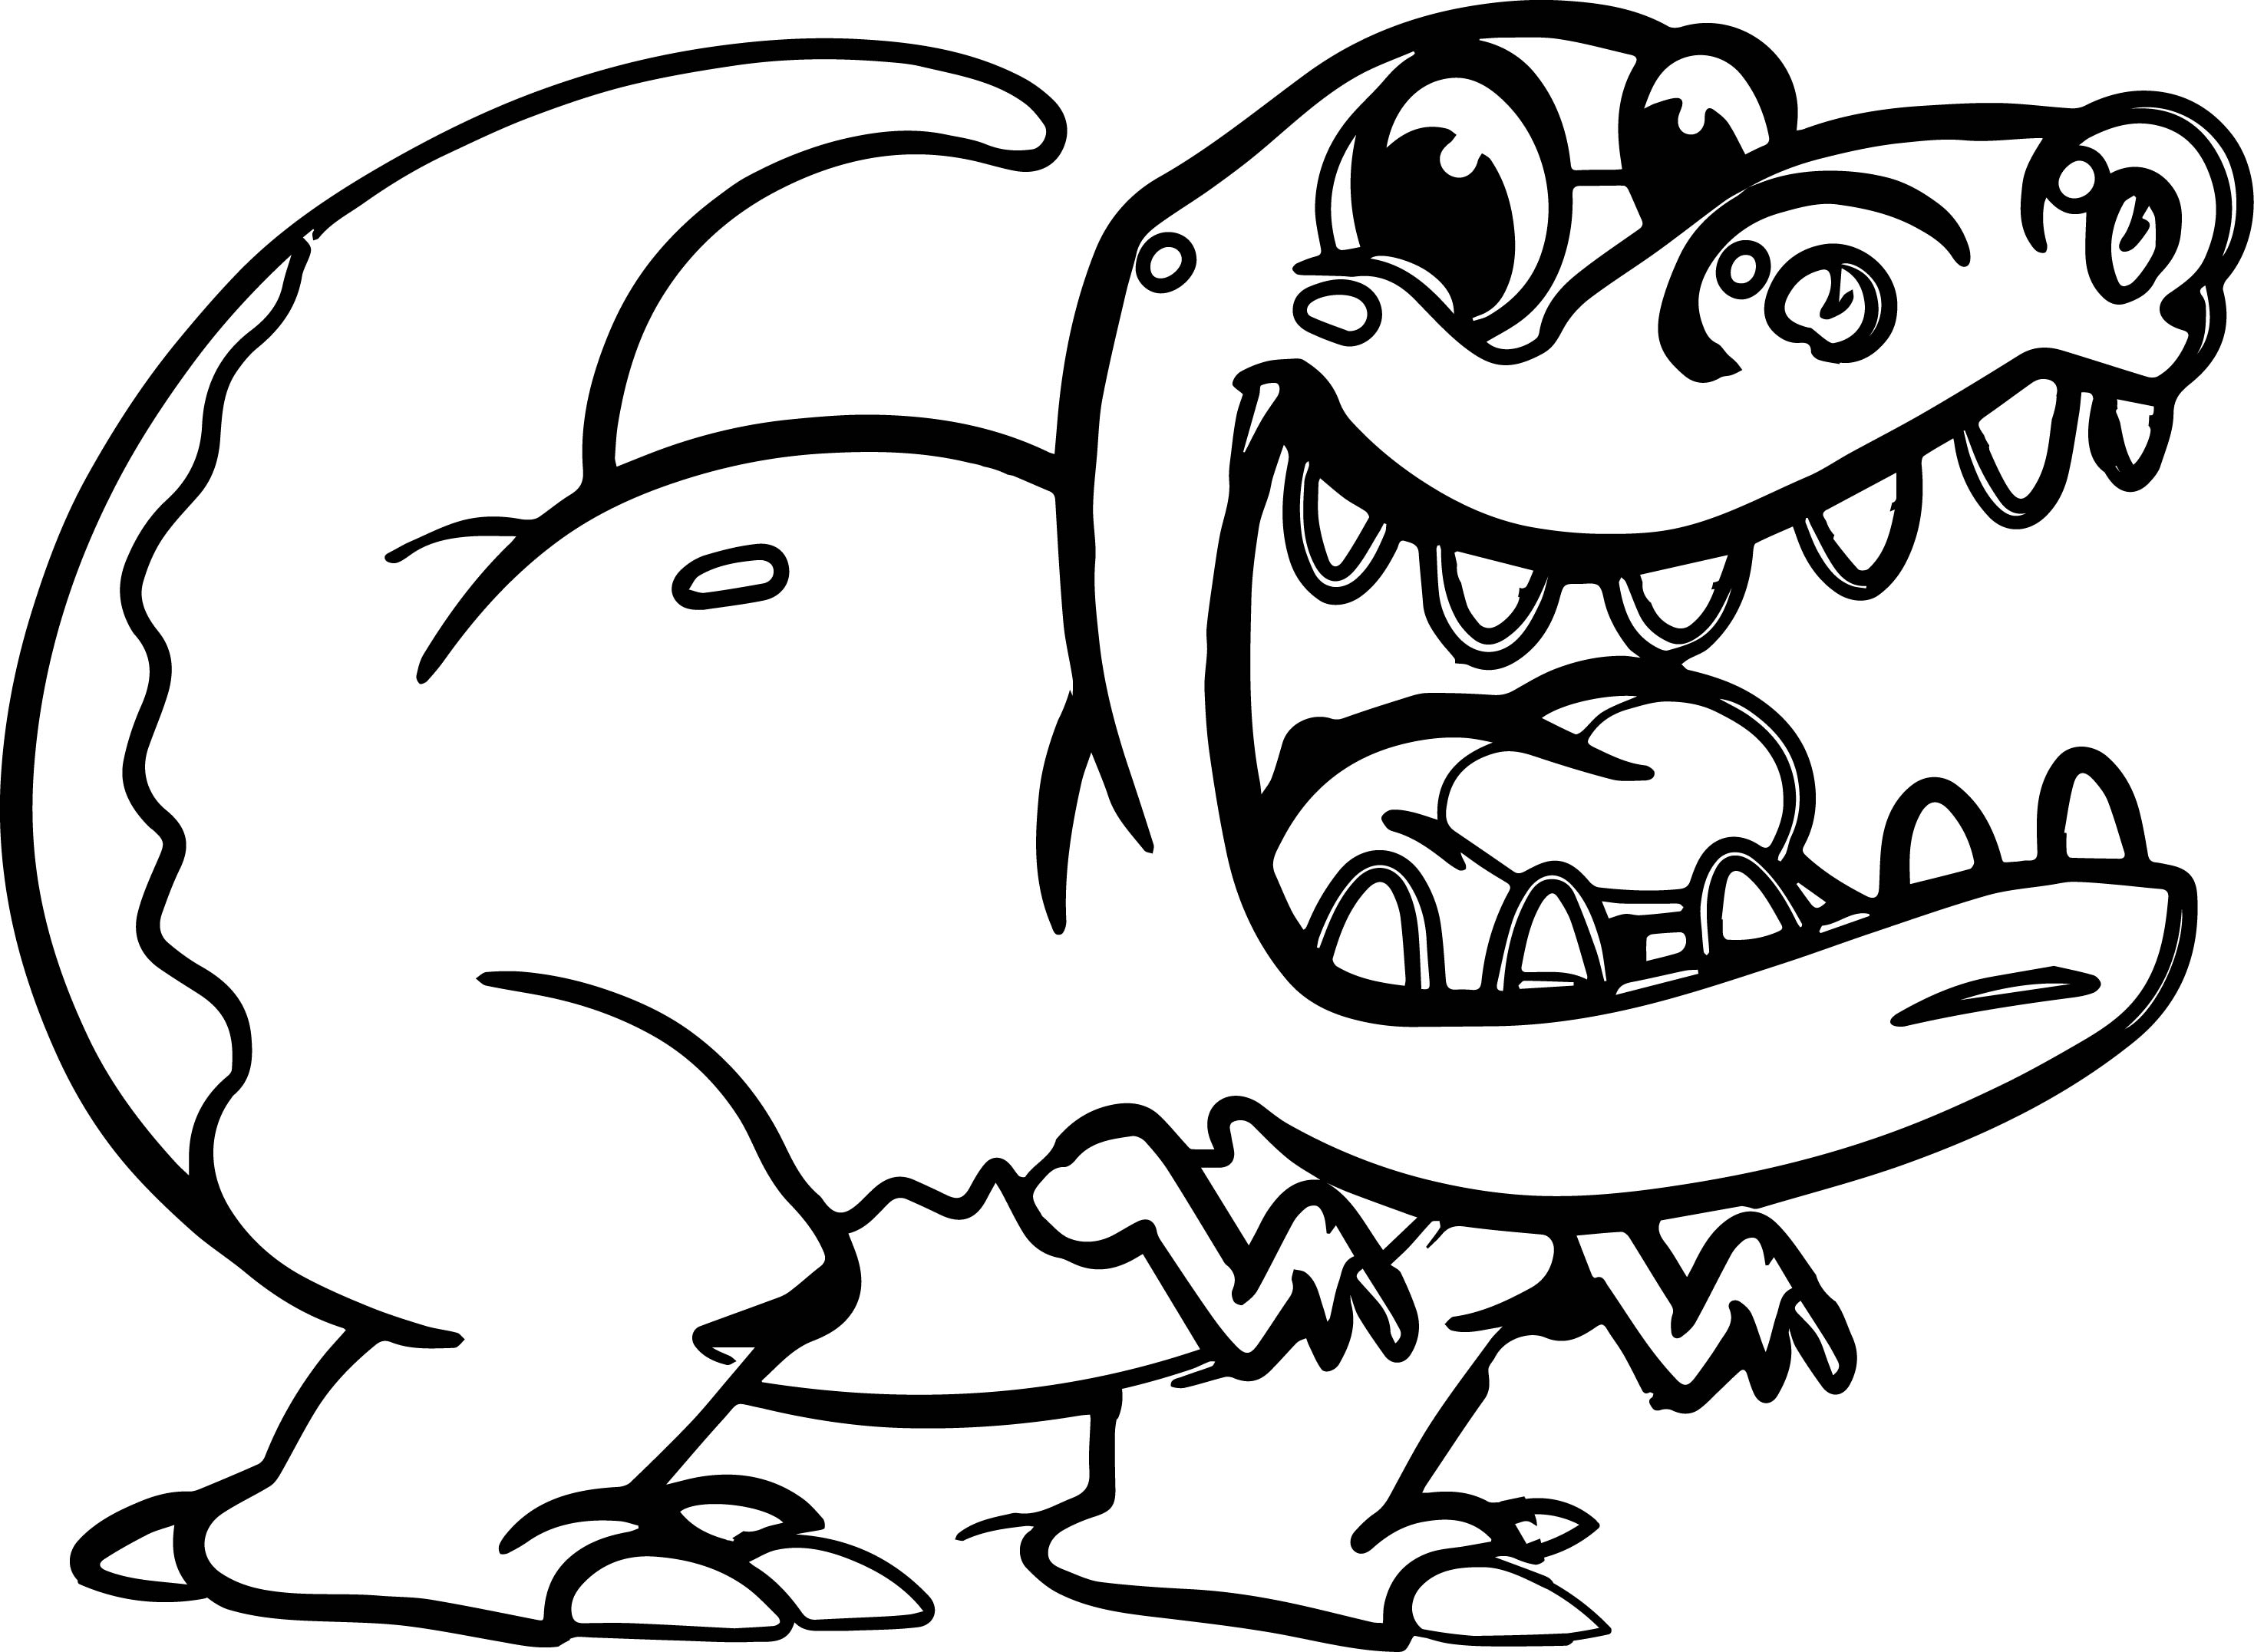 dinosaur pictures to colour in print download dinosaur t rex coloring pages for kids dinosaur colour to in pictures